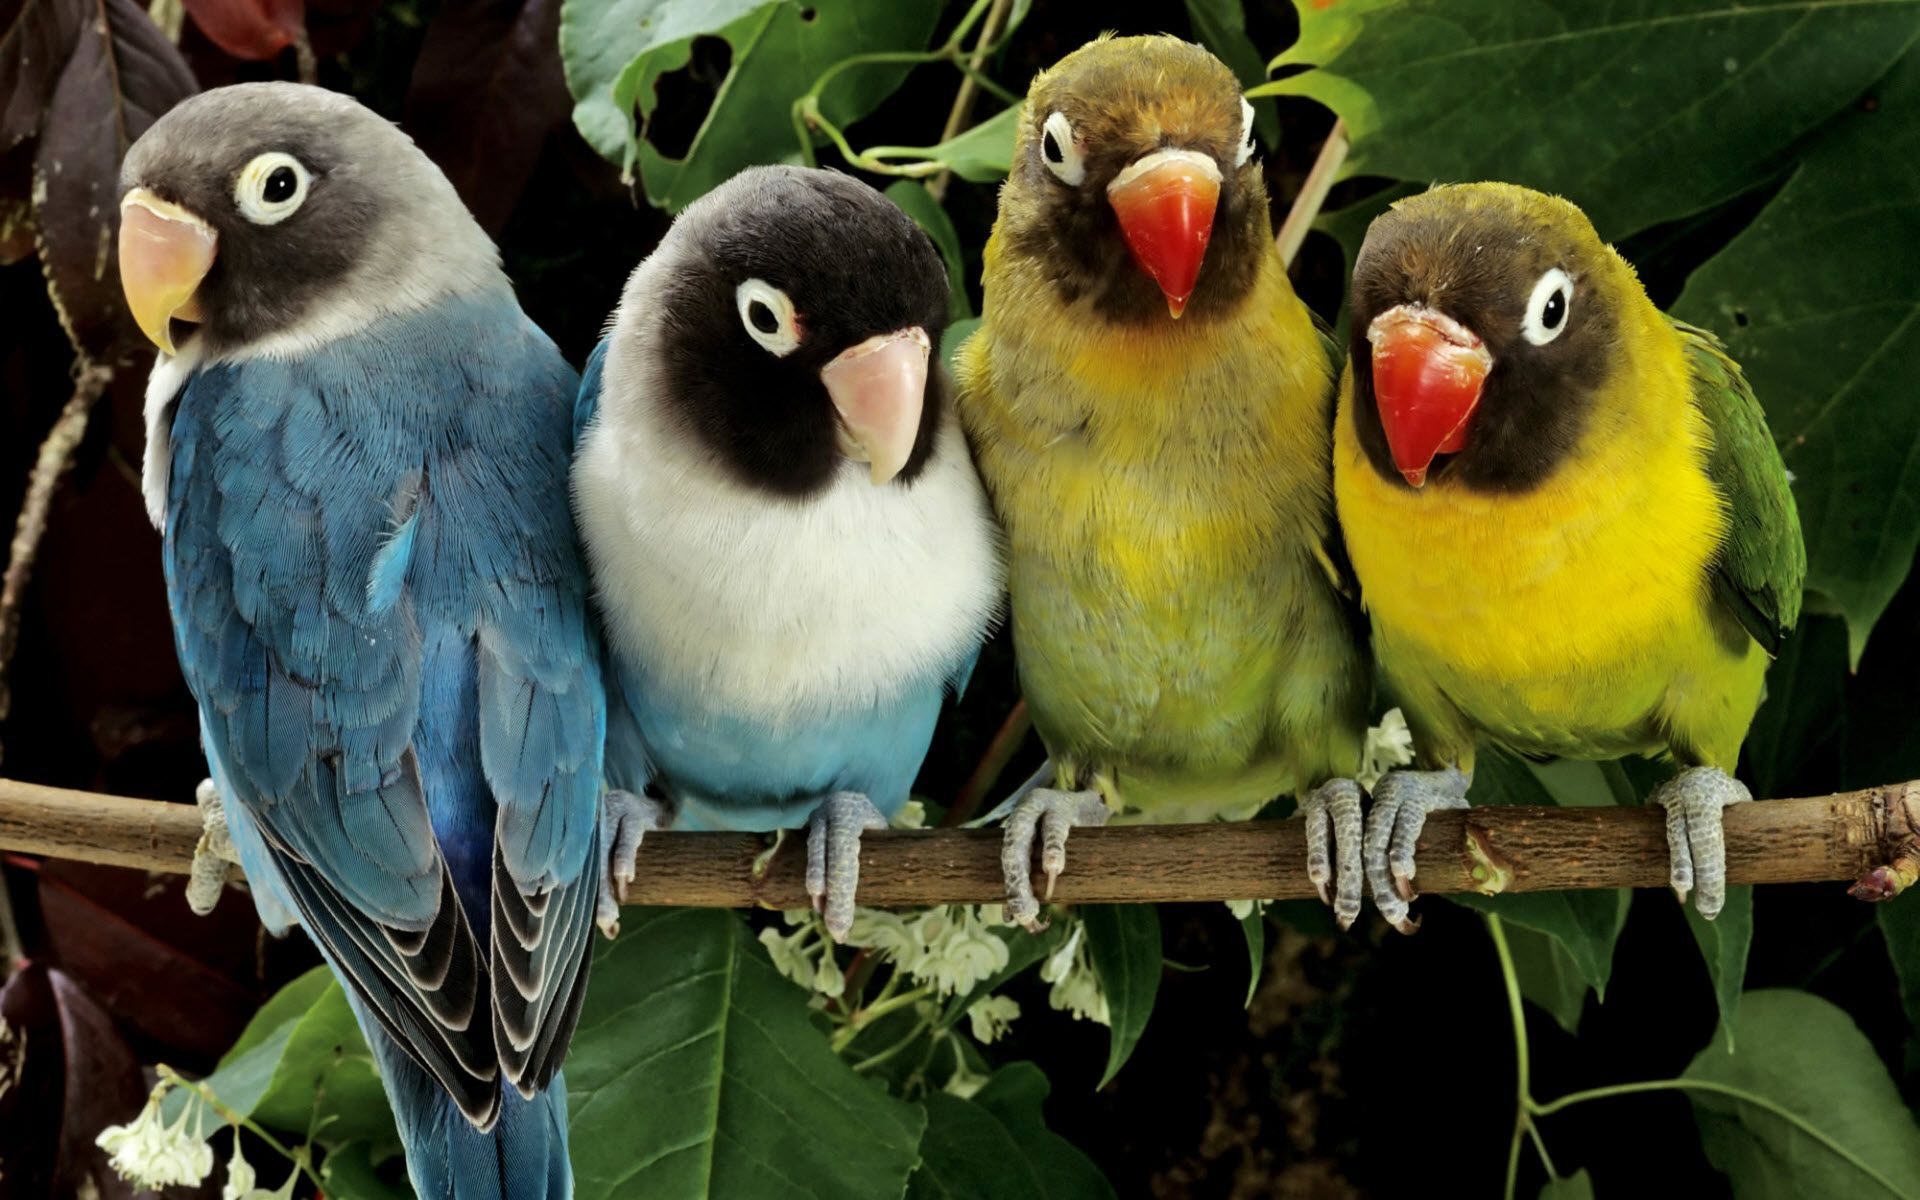 Love Birds Wallpaper Free Download For Pc: Download Light Green Floral Wallpaper Gallery